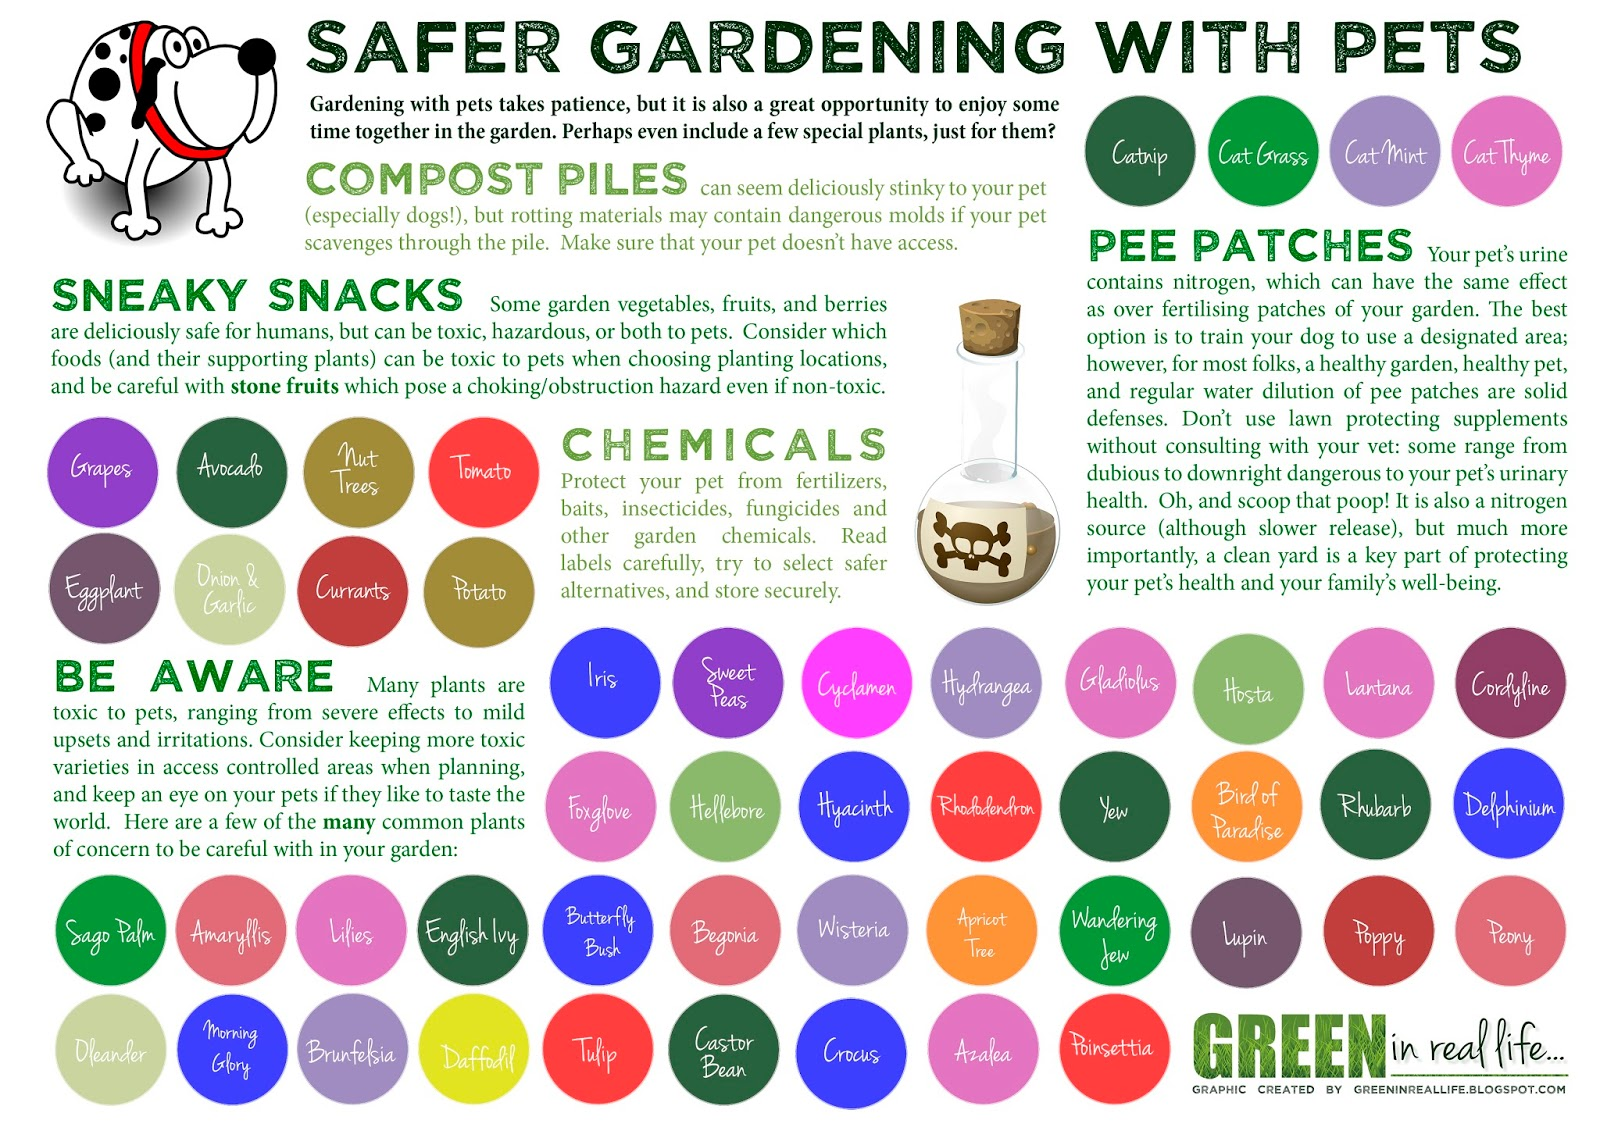 Green in Real Life: Ideas for the Home Garden - Gardening with Pets